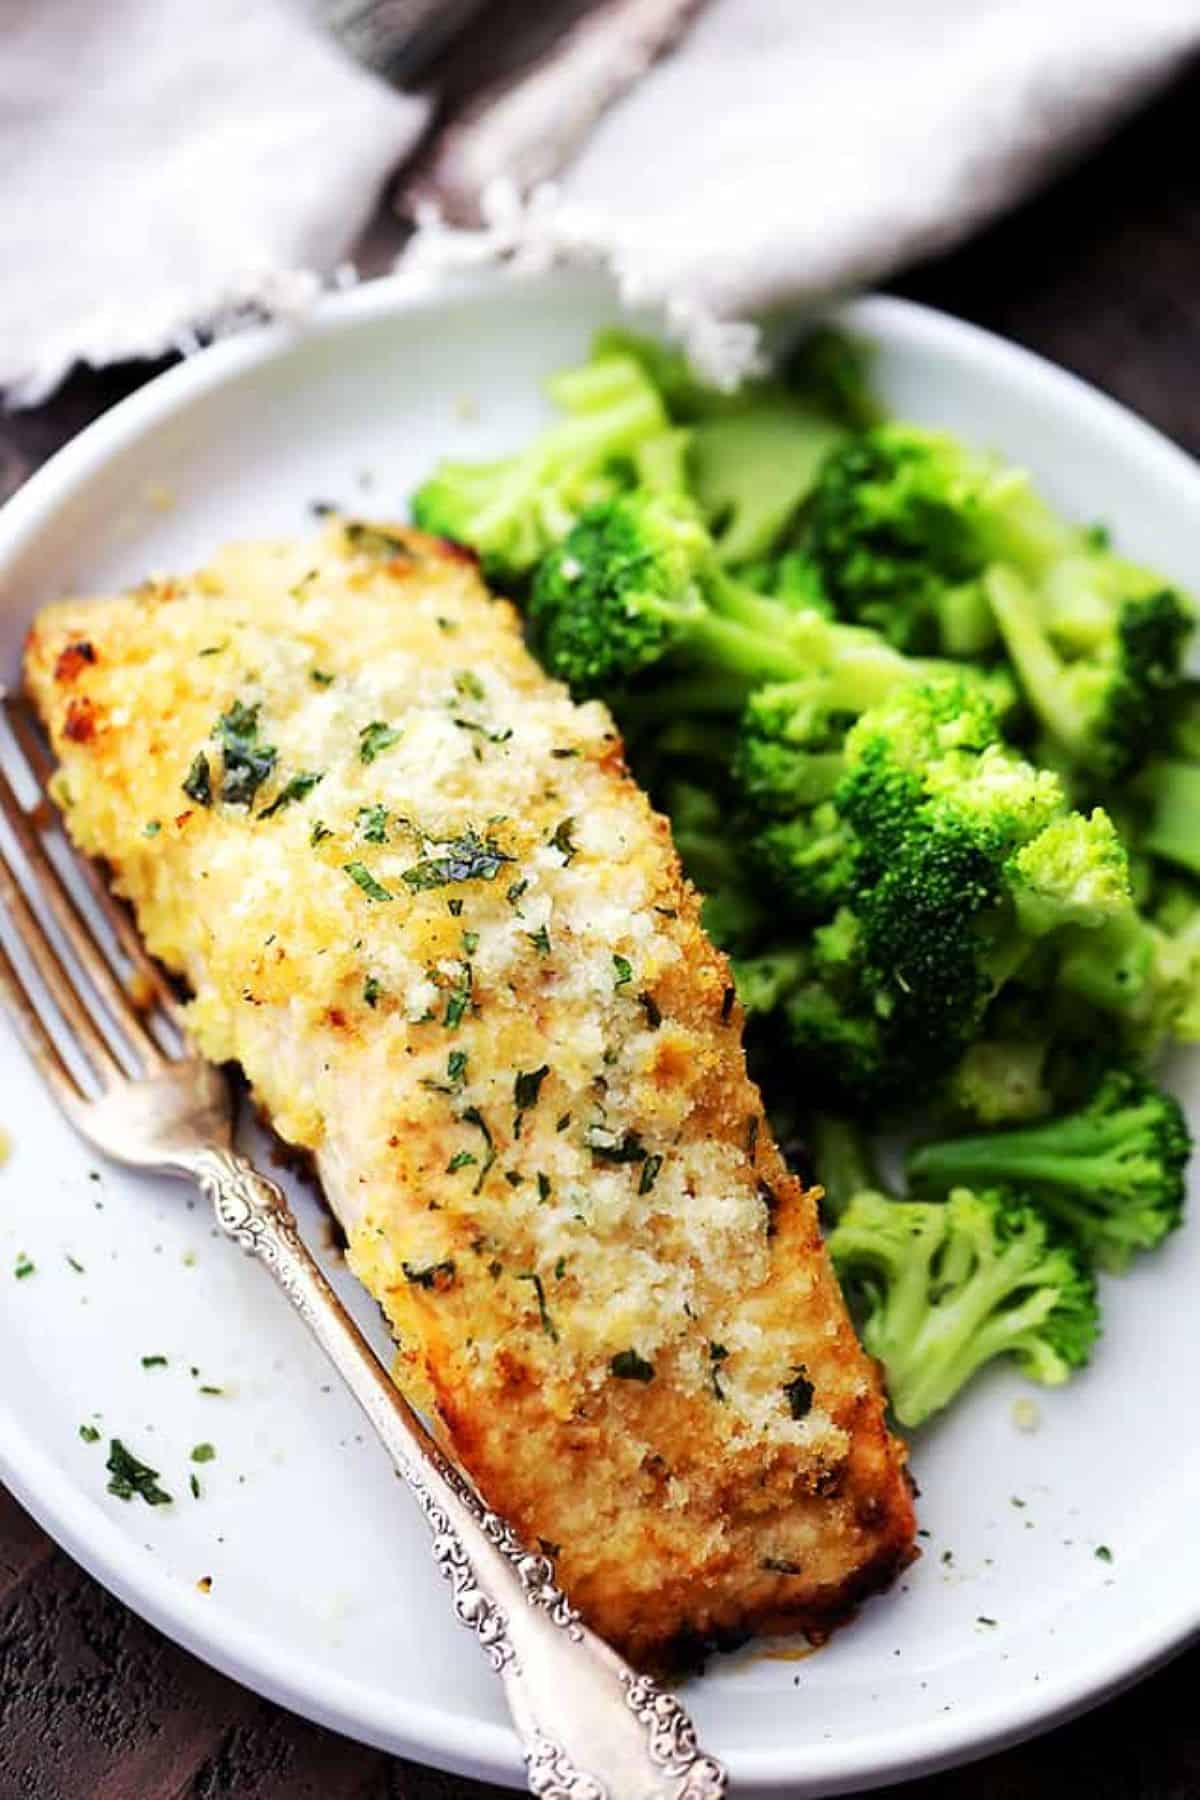 Baked honey mustard salmon with a side of broccoli.